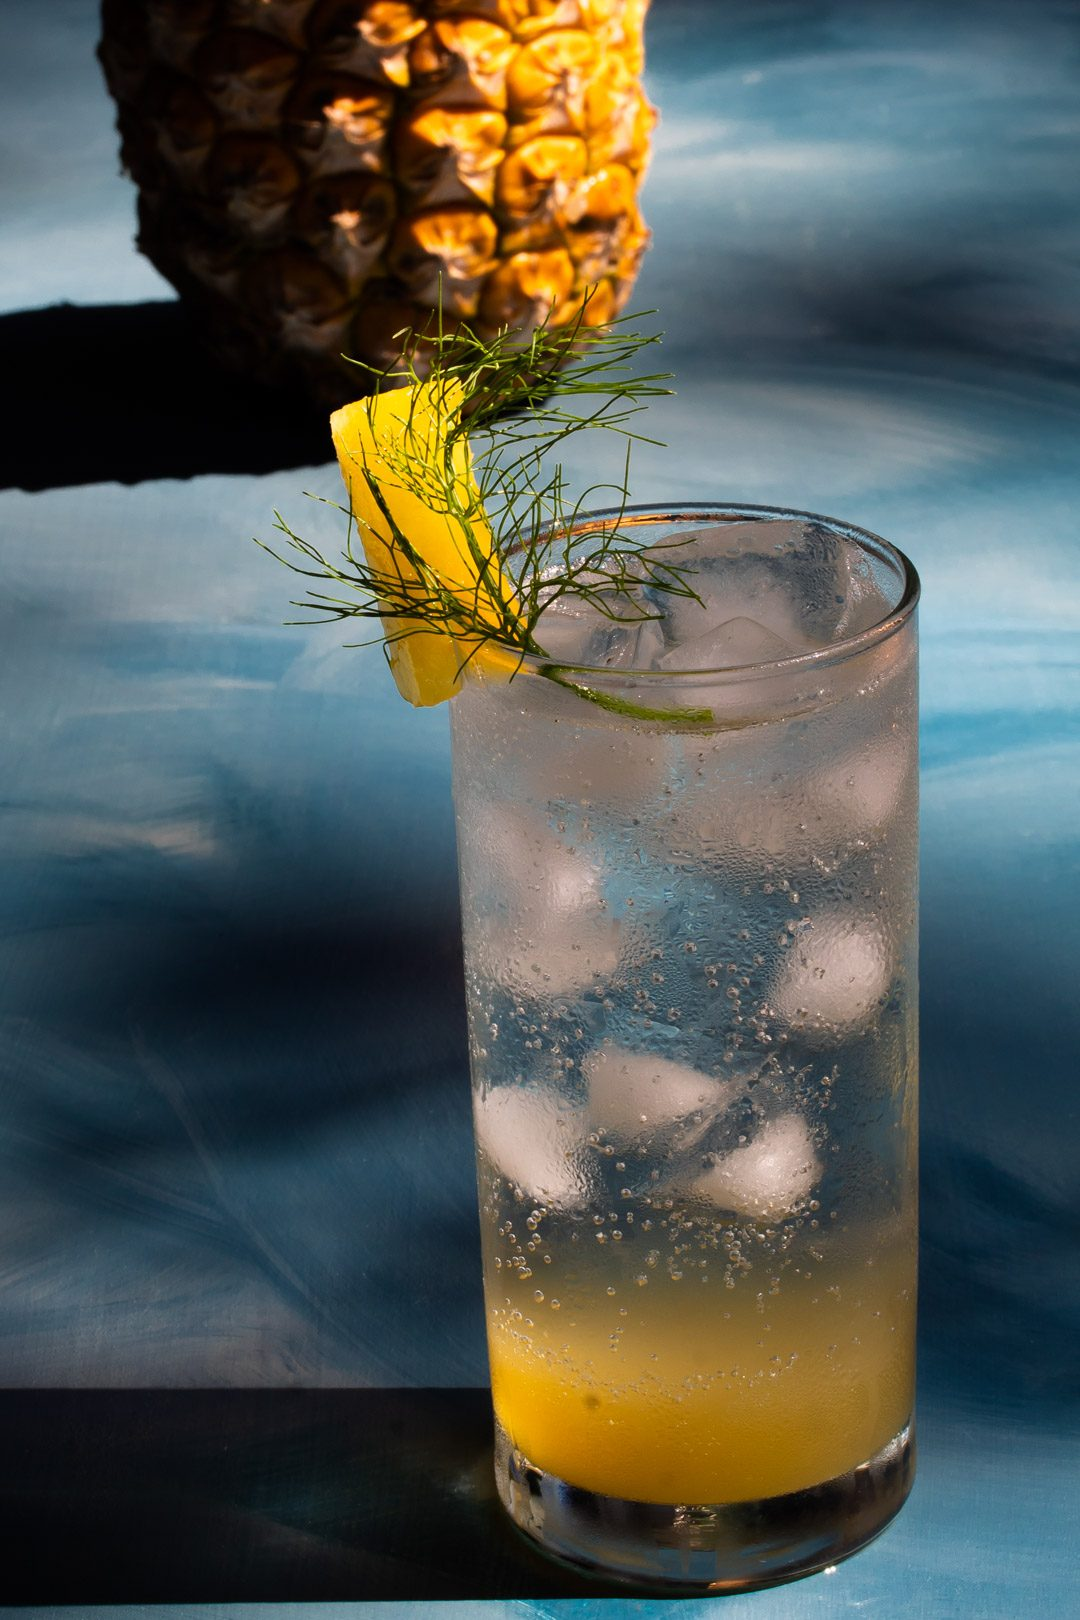 pineapple fennel shrub syrup from a 45 degree angle with pineapple in the background